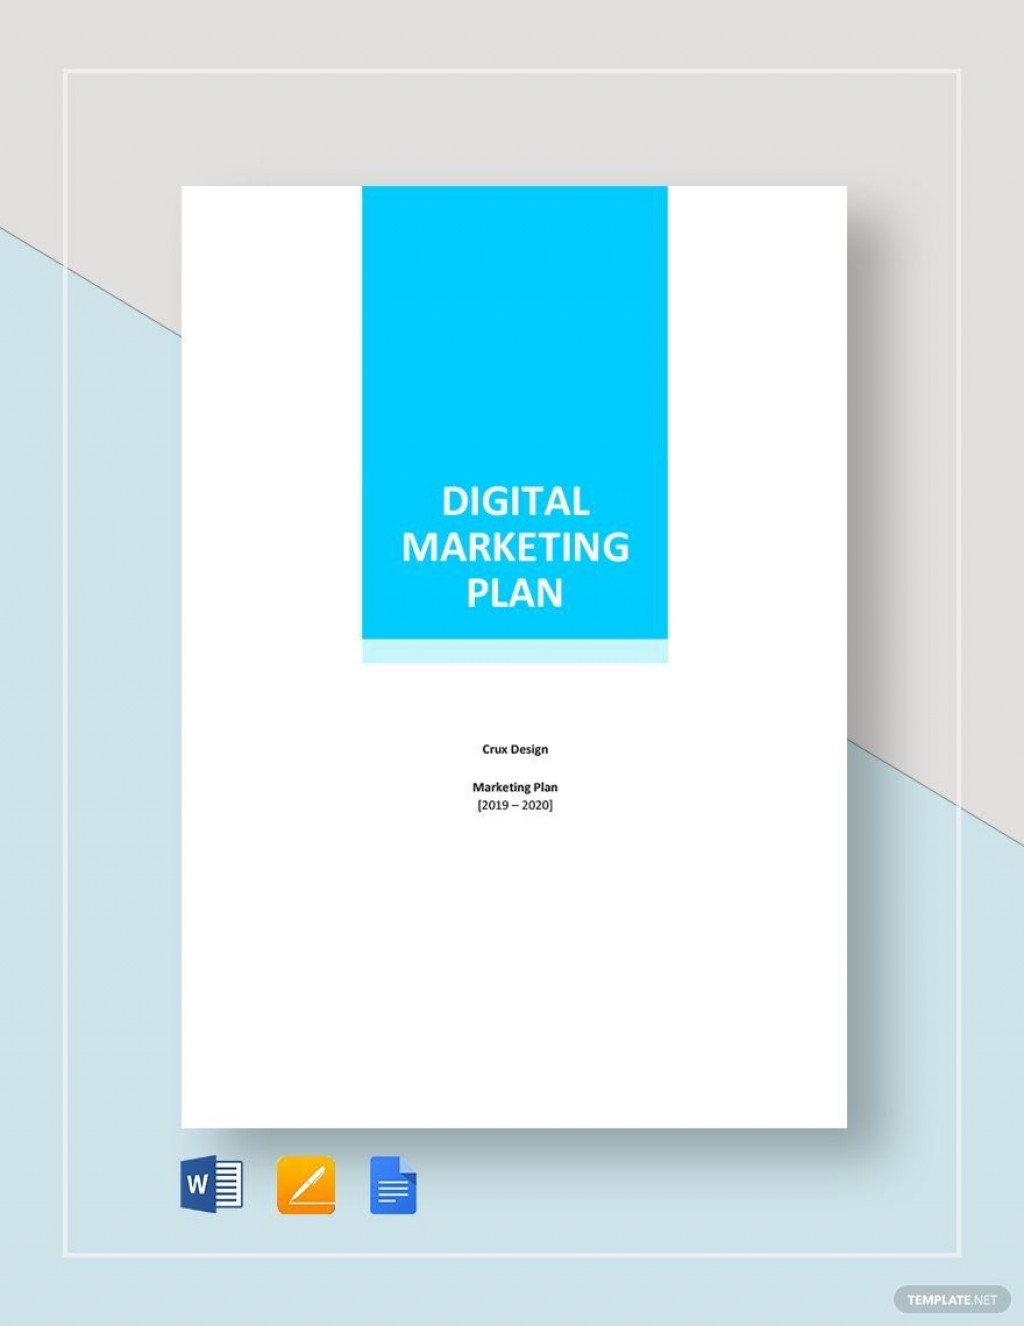 001 Archaicawful Digital Marketing Plan Template Word High Definition Large